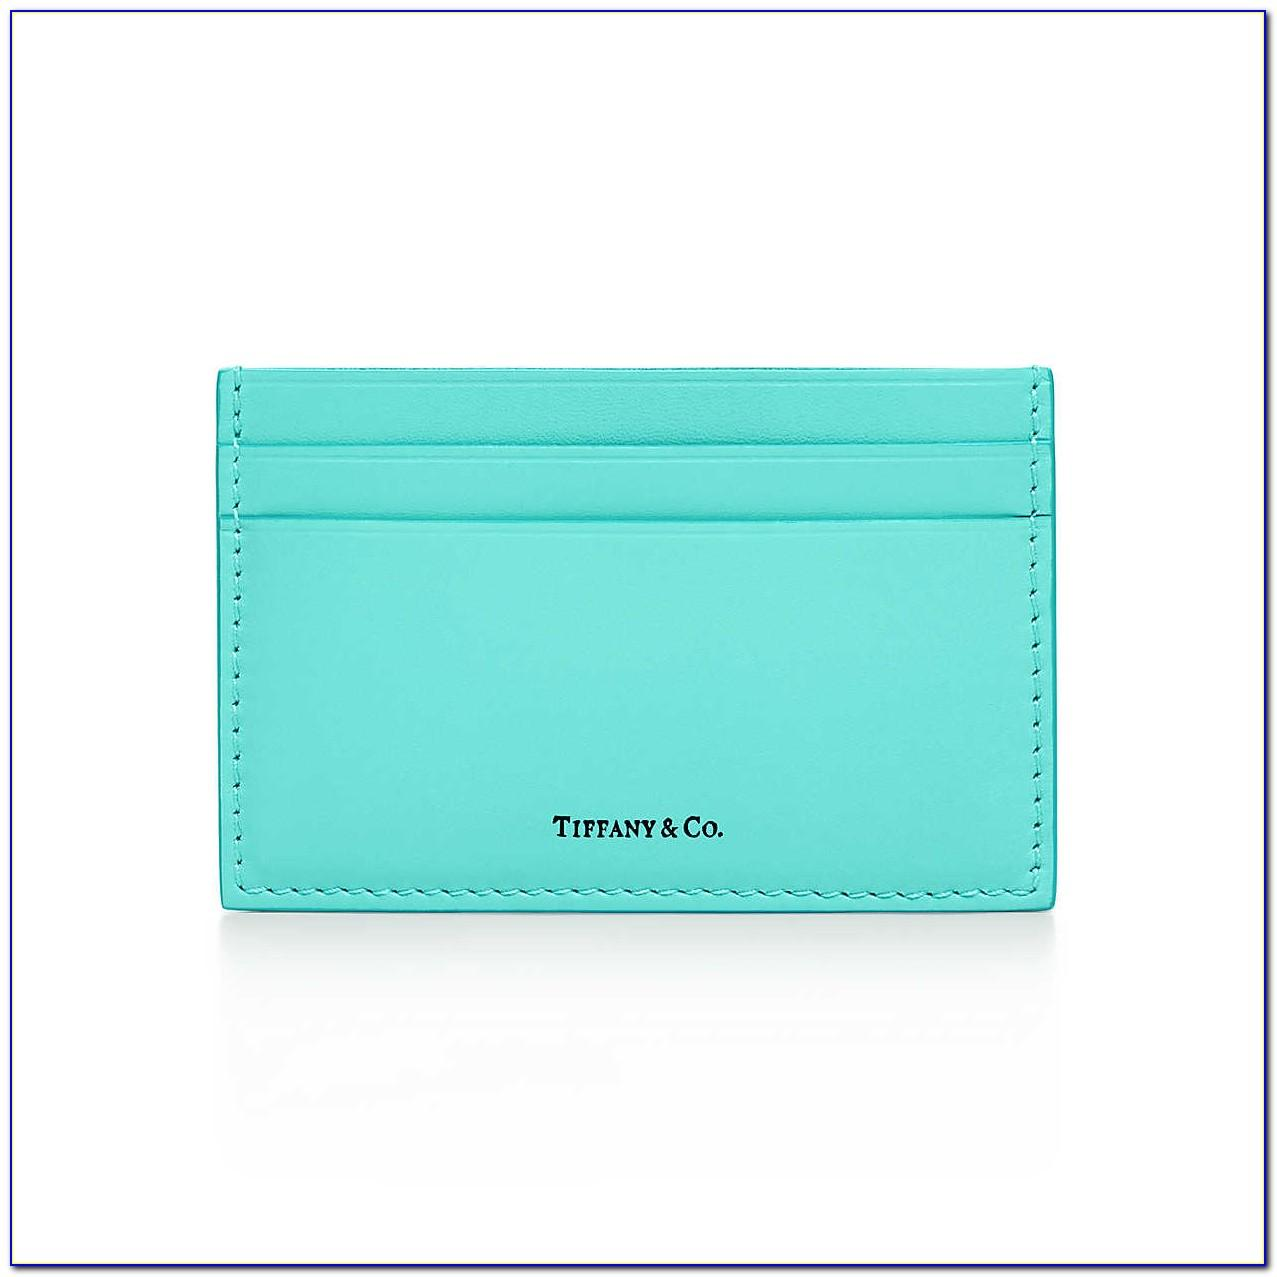 Tiffany & Co Silver Business Card Holder